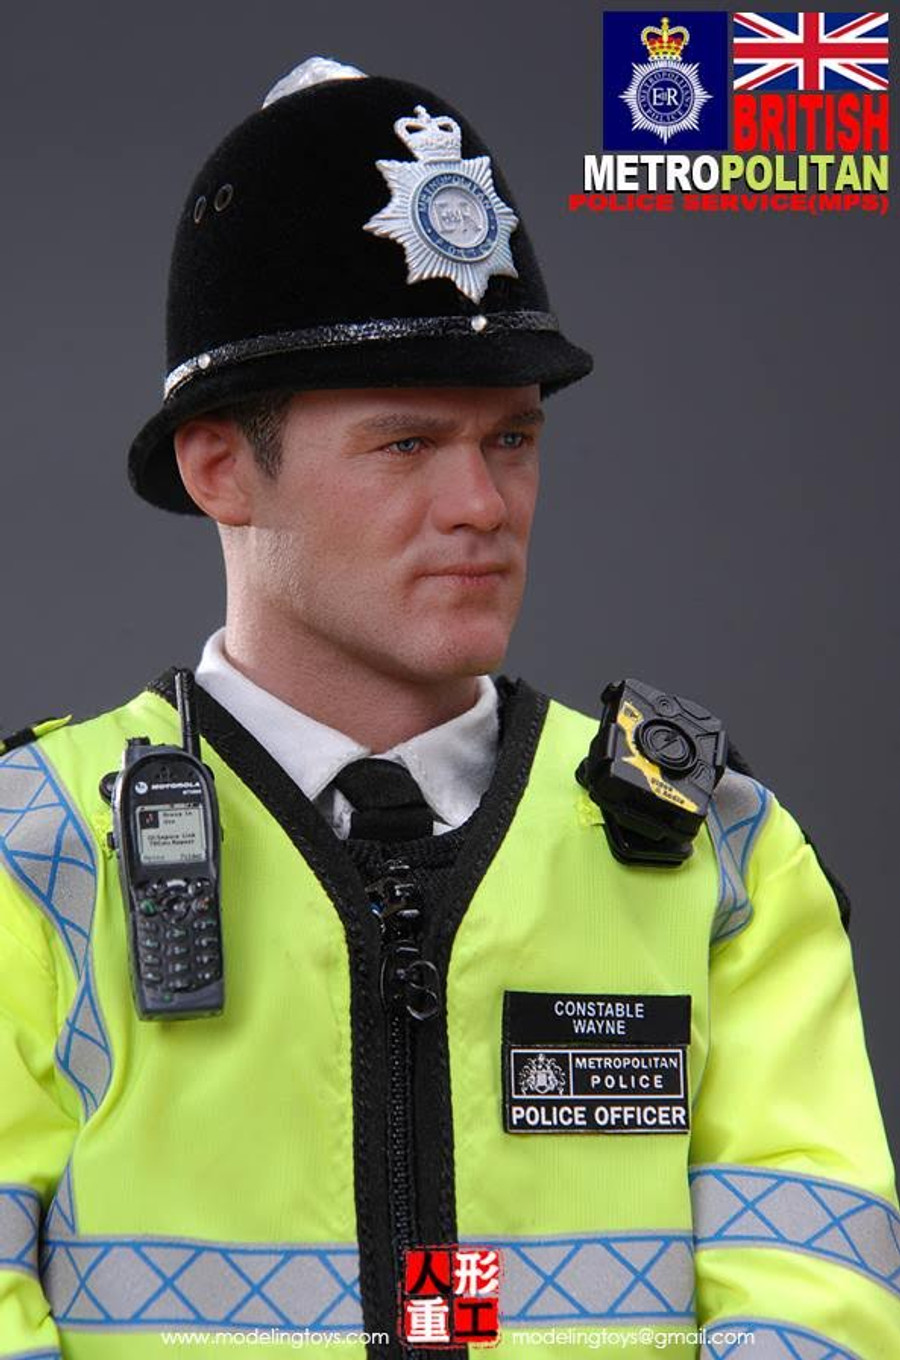 Modeling Toys - Military Series: British Metropolitan Police Service (MPS)